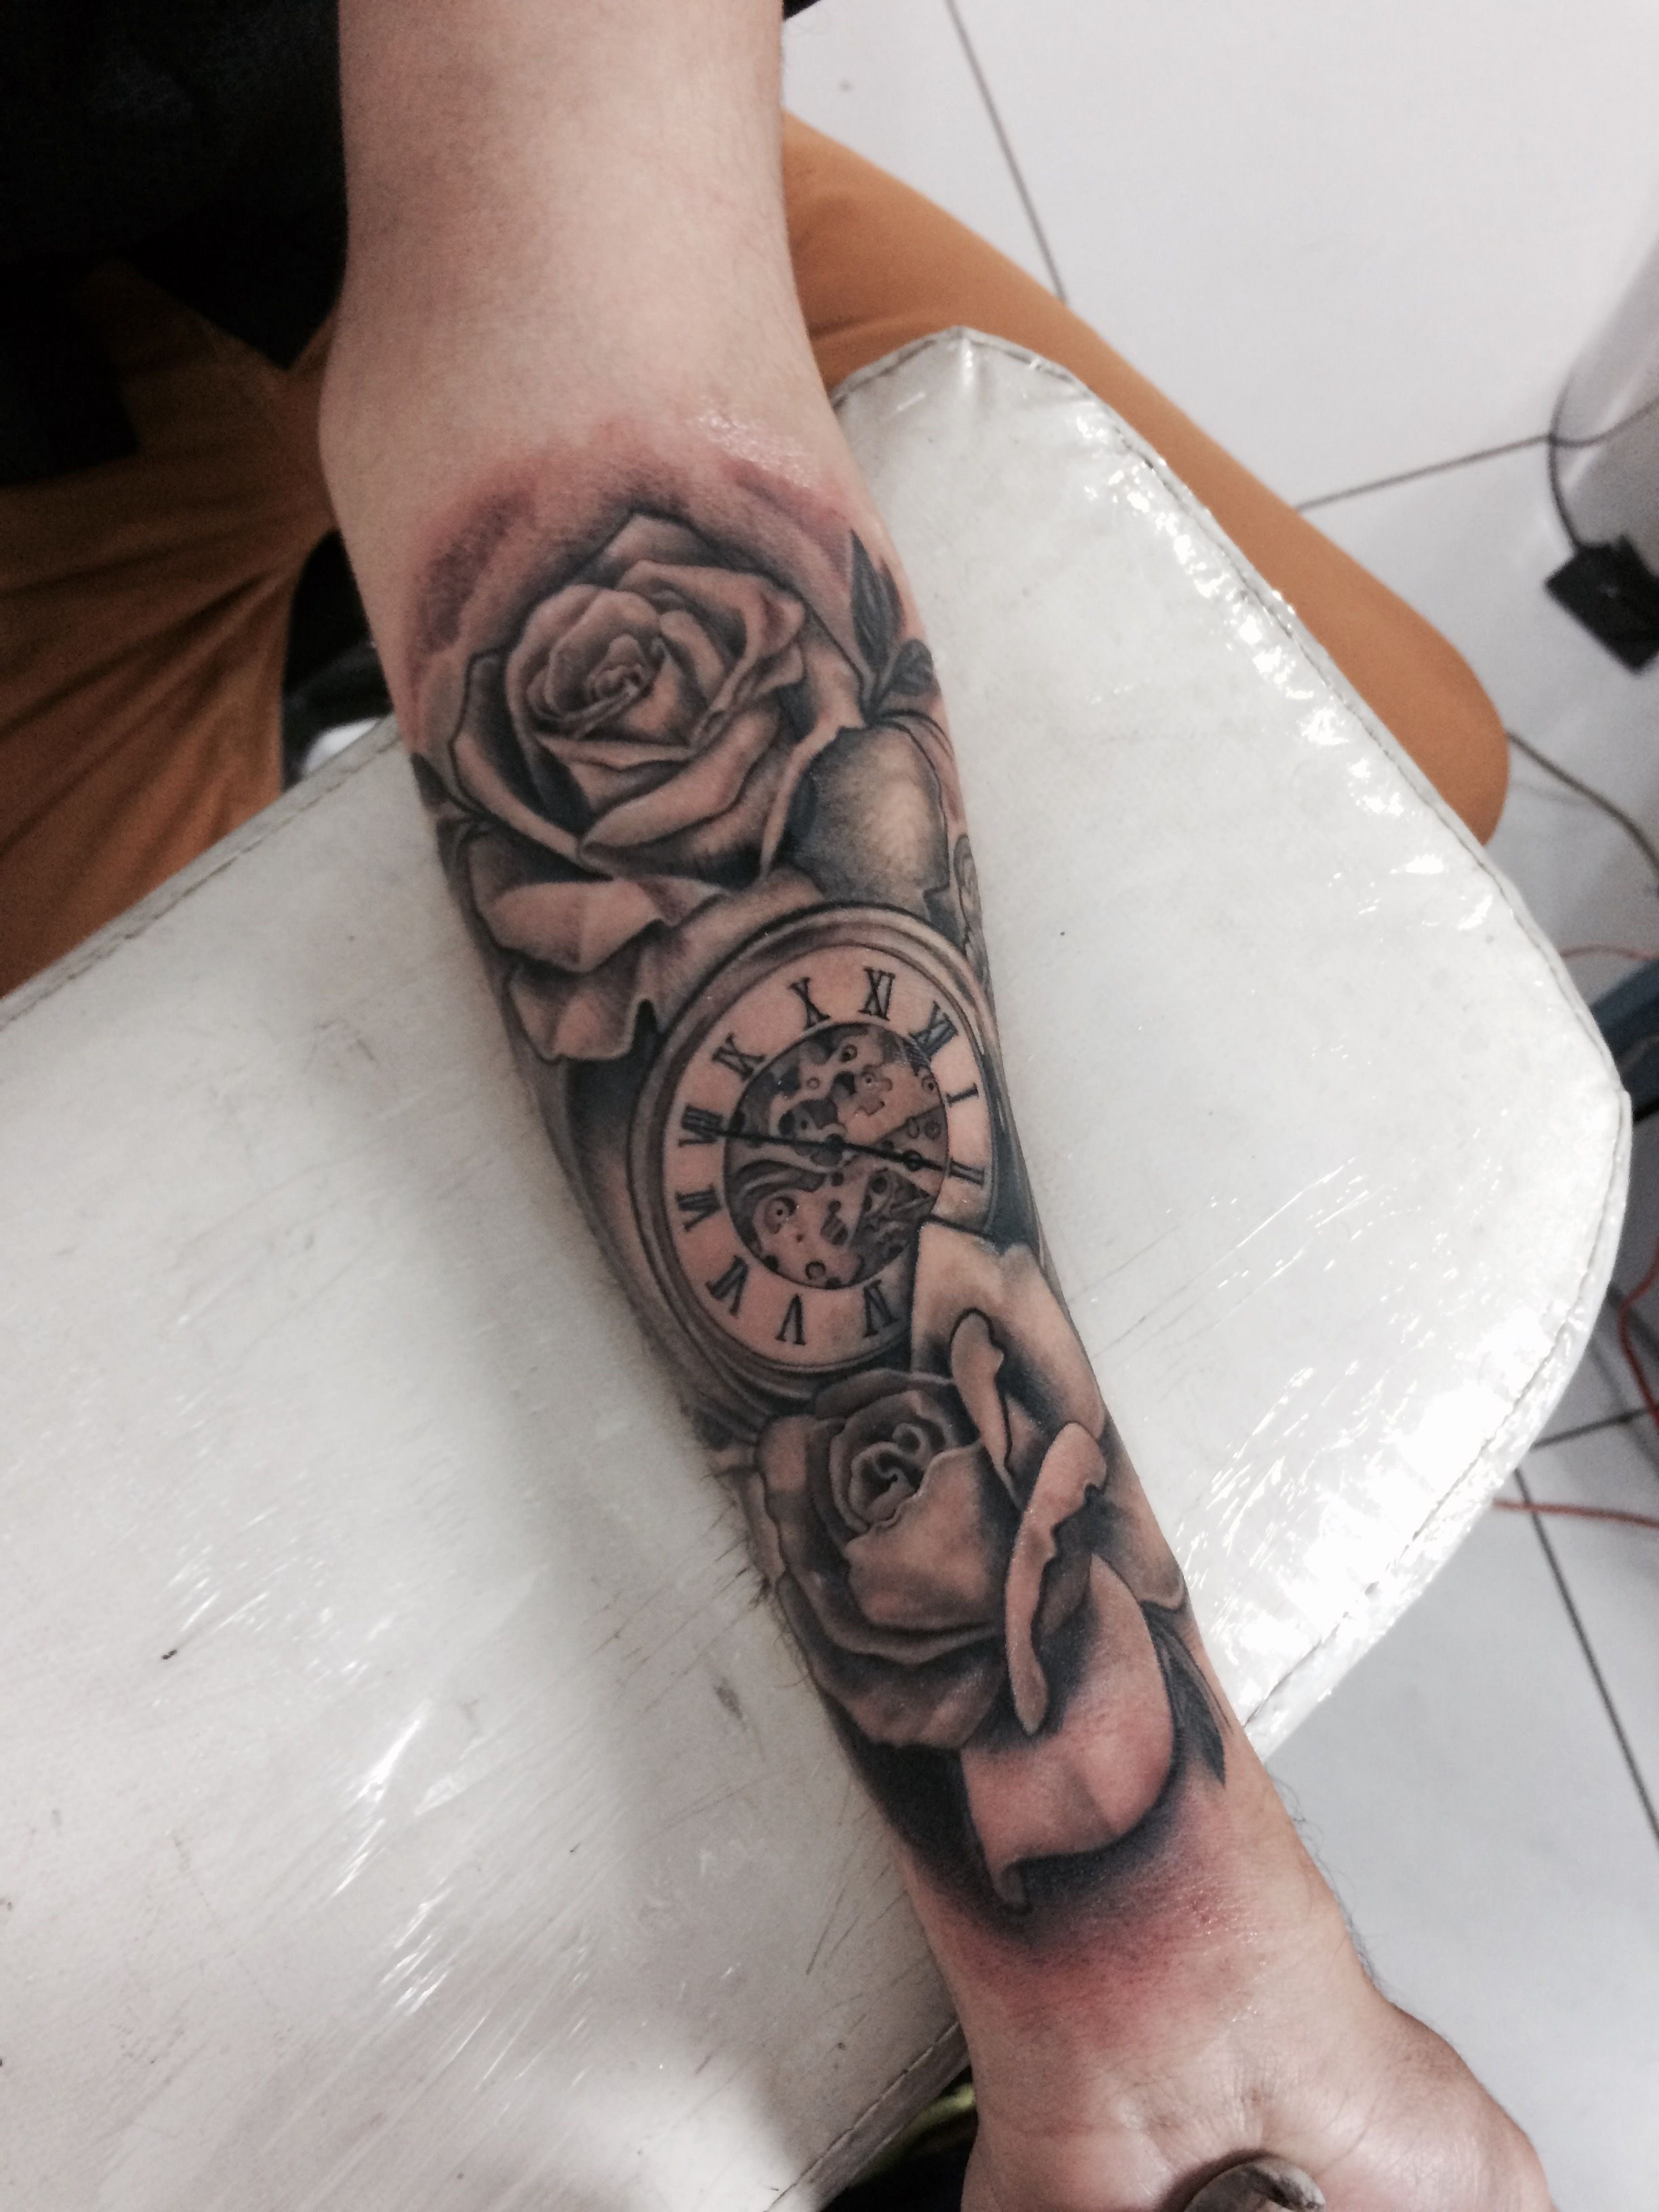 Tattoo rosas e relógio . Clock time by @tattoolucas